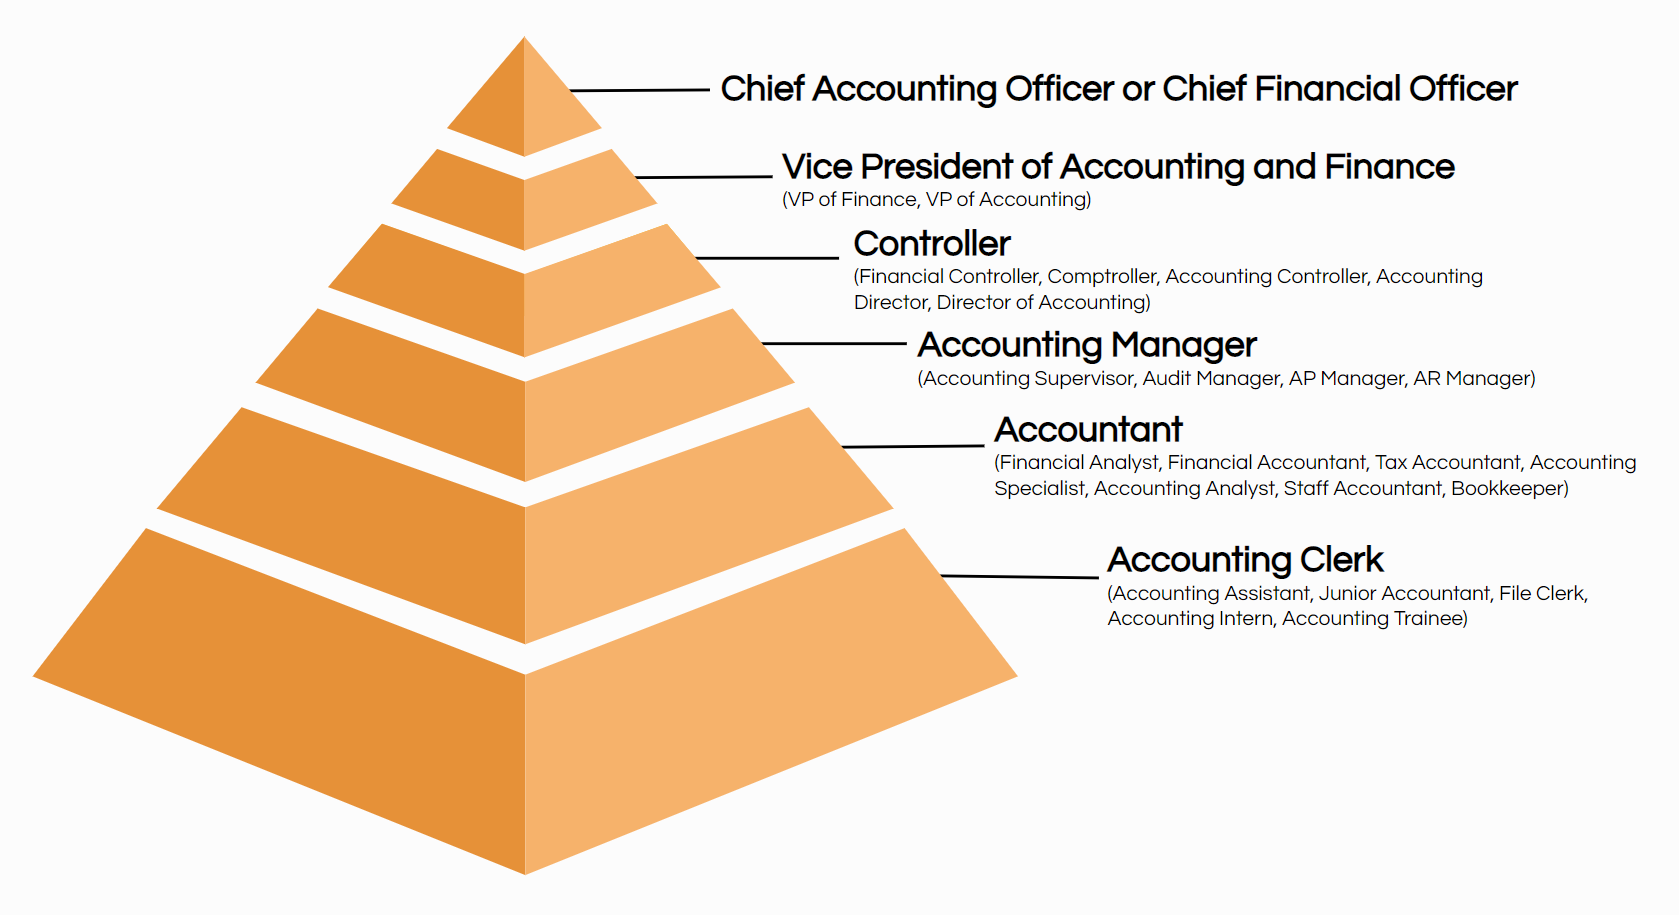 accounting job titles hierarchy pyramid